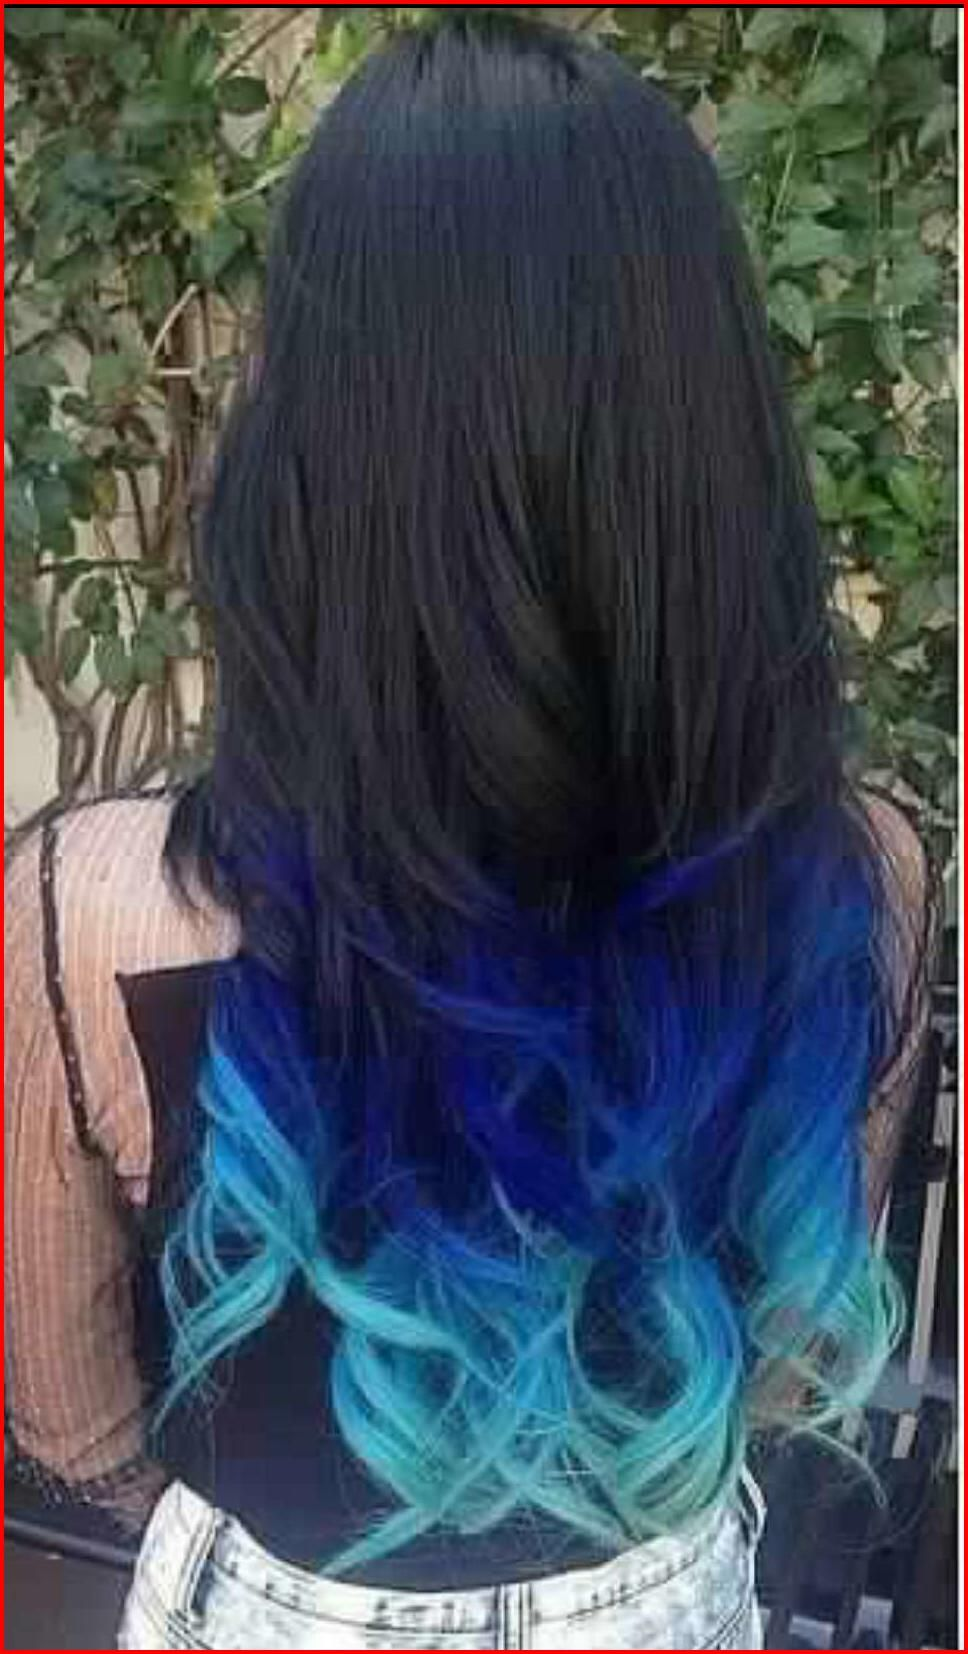 50 Blue Hair Highlights Ideas Blue Highlights Are Becoming More And More Popular As People Become More Ad Blue Hair Highlights Blue Tips Hair Short Hair Color